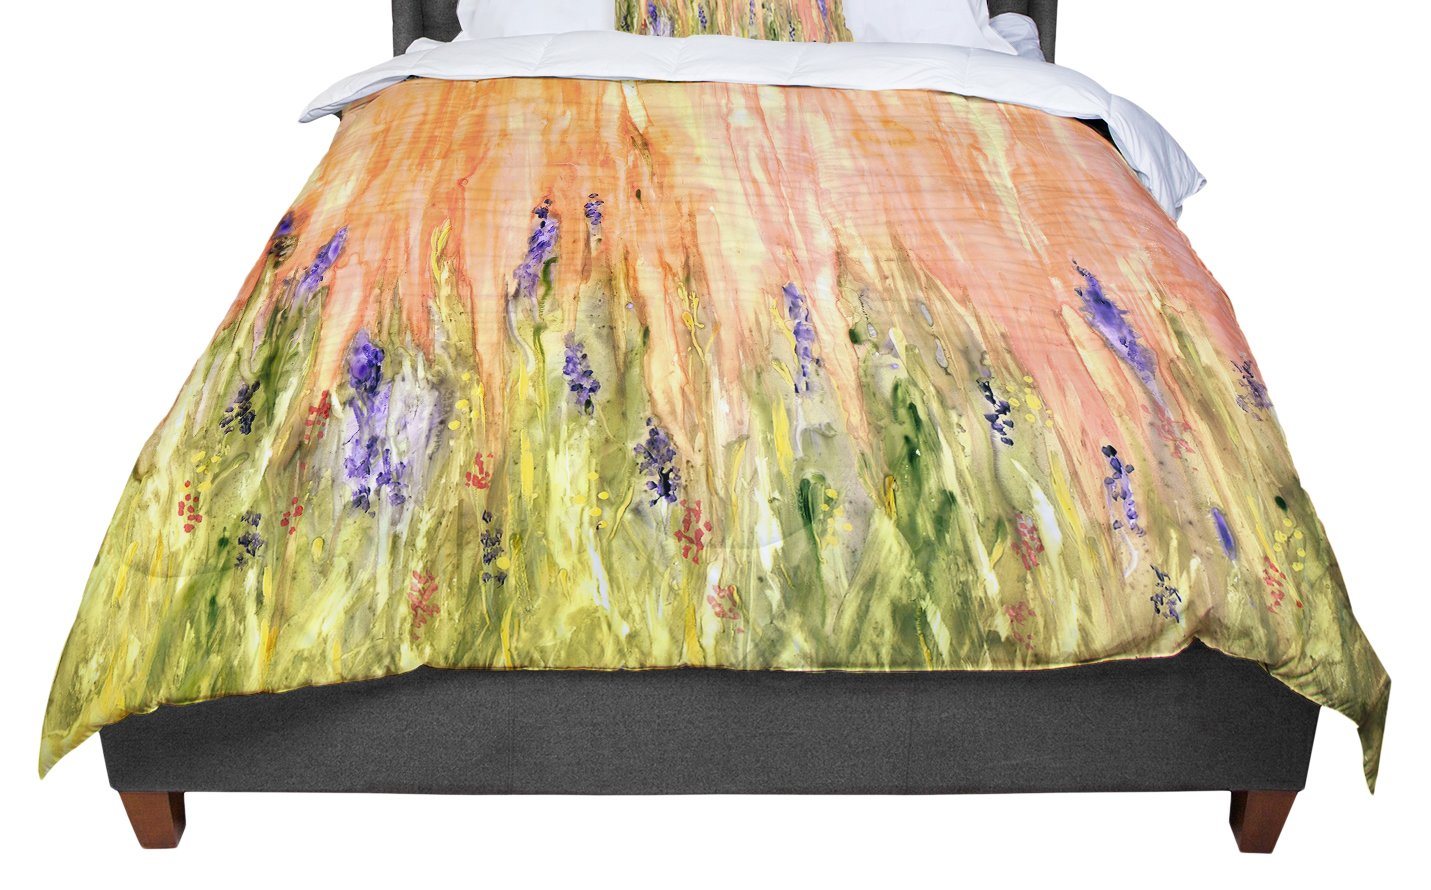 KESS InHouse Rosie Brown 'Welcome Spring' Orange Green King / Cal King Comforter, 104' X 88'